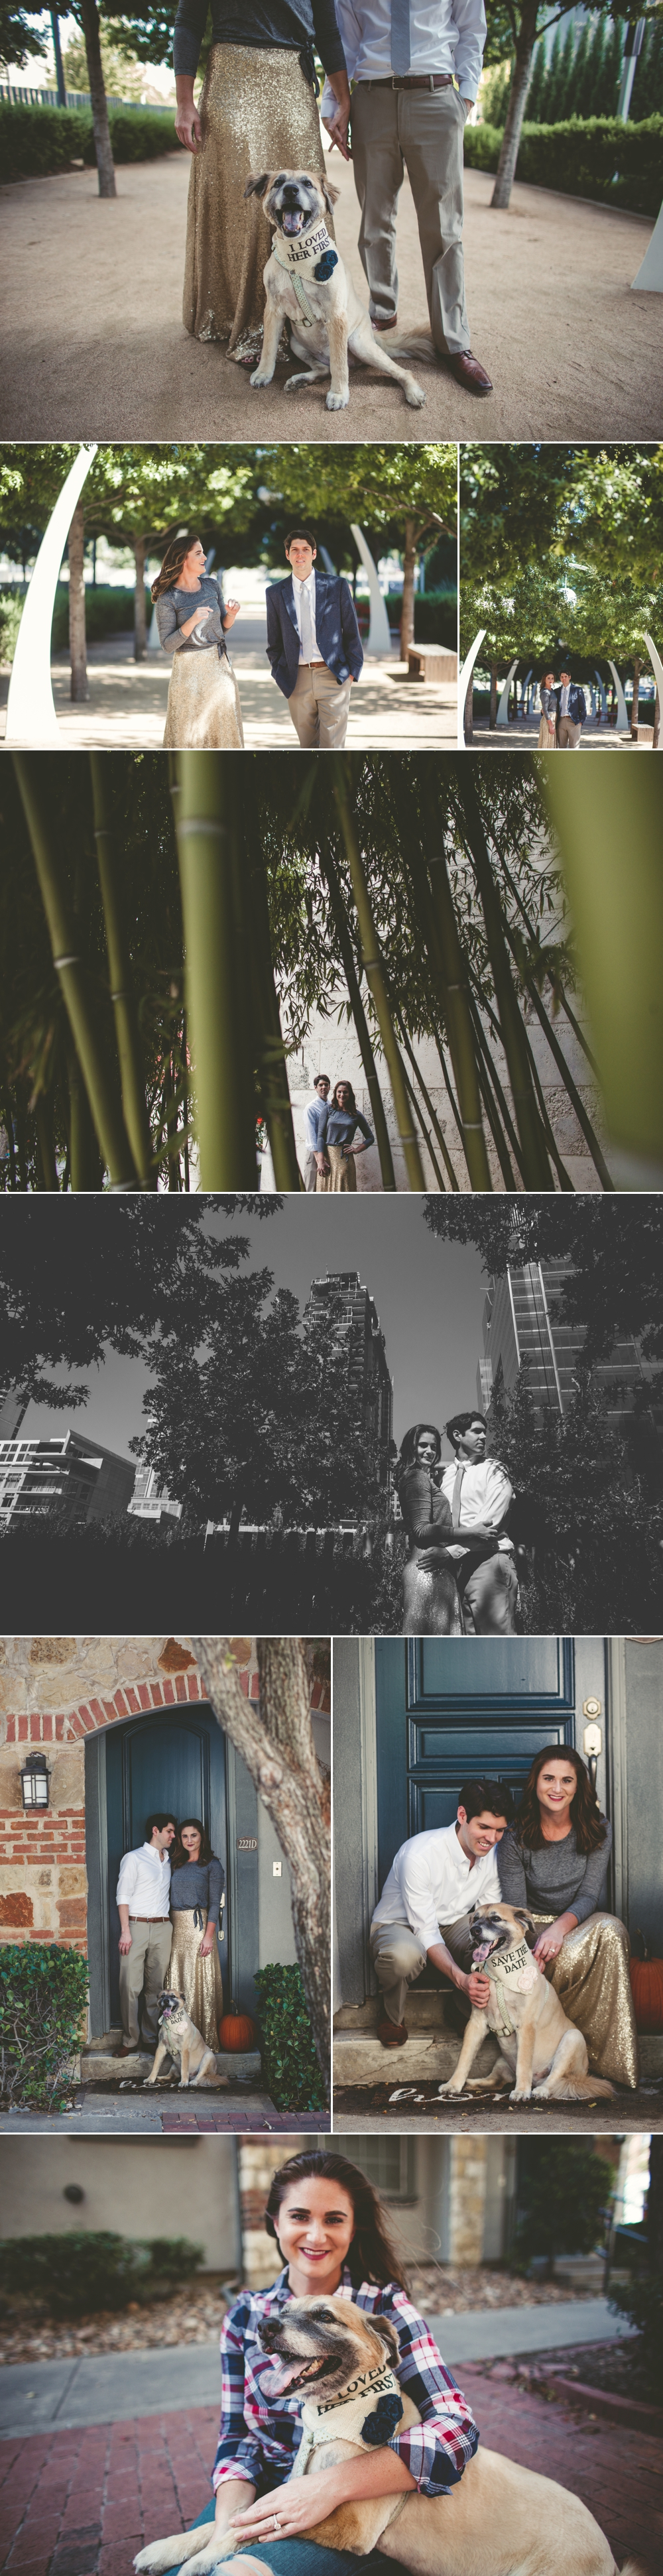 jason_domingues_photography_best_kansas_city_photographer_kc_weddings_dallas_tx_engagement_session_0001.JPG